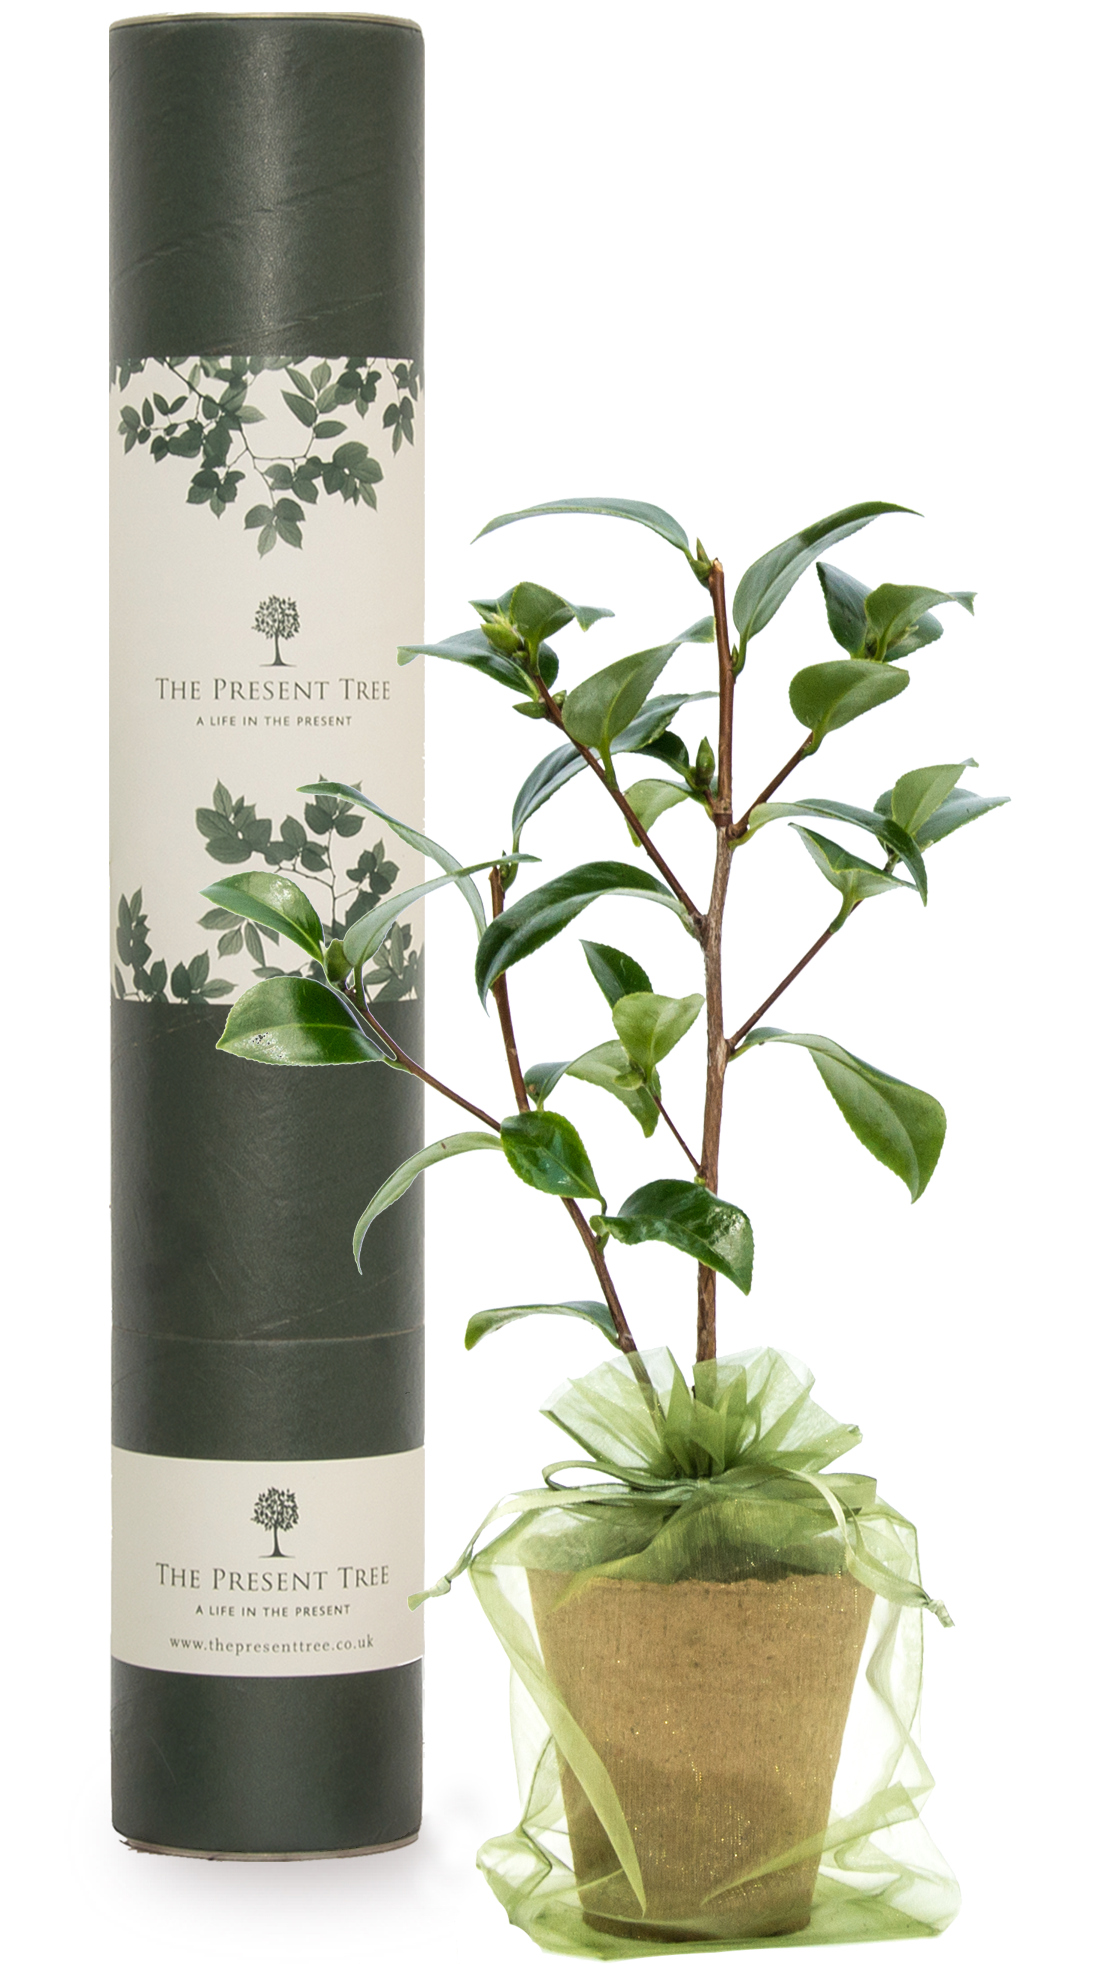 The Cherry tree will happily thriv Cherry Tree Gift | Tree Gifts | The Present Tree Buy a Cherry Tree Gift symbolising good fortune and happiness with free UK delivery when you order a .